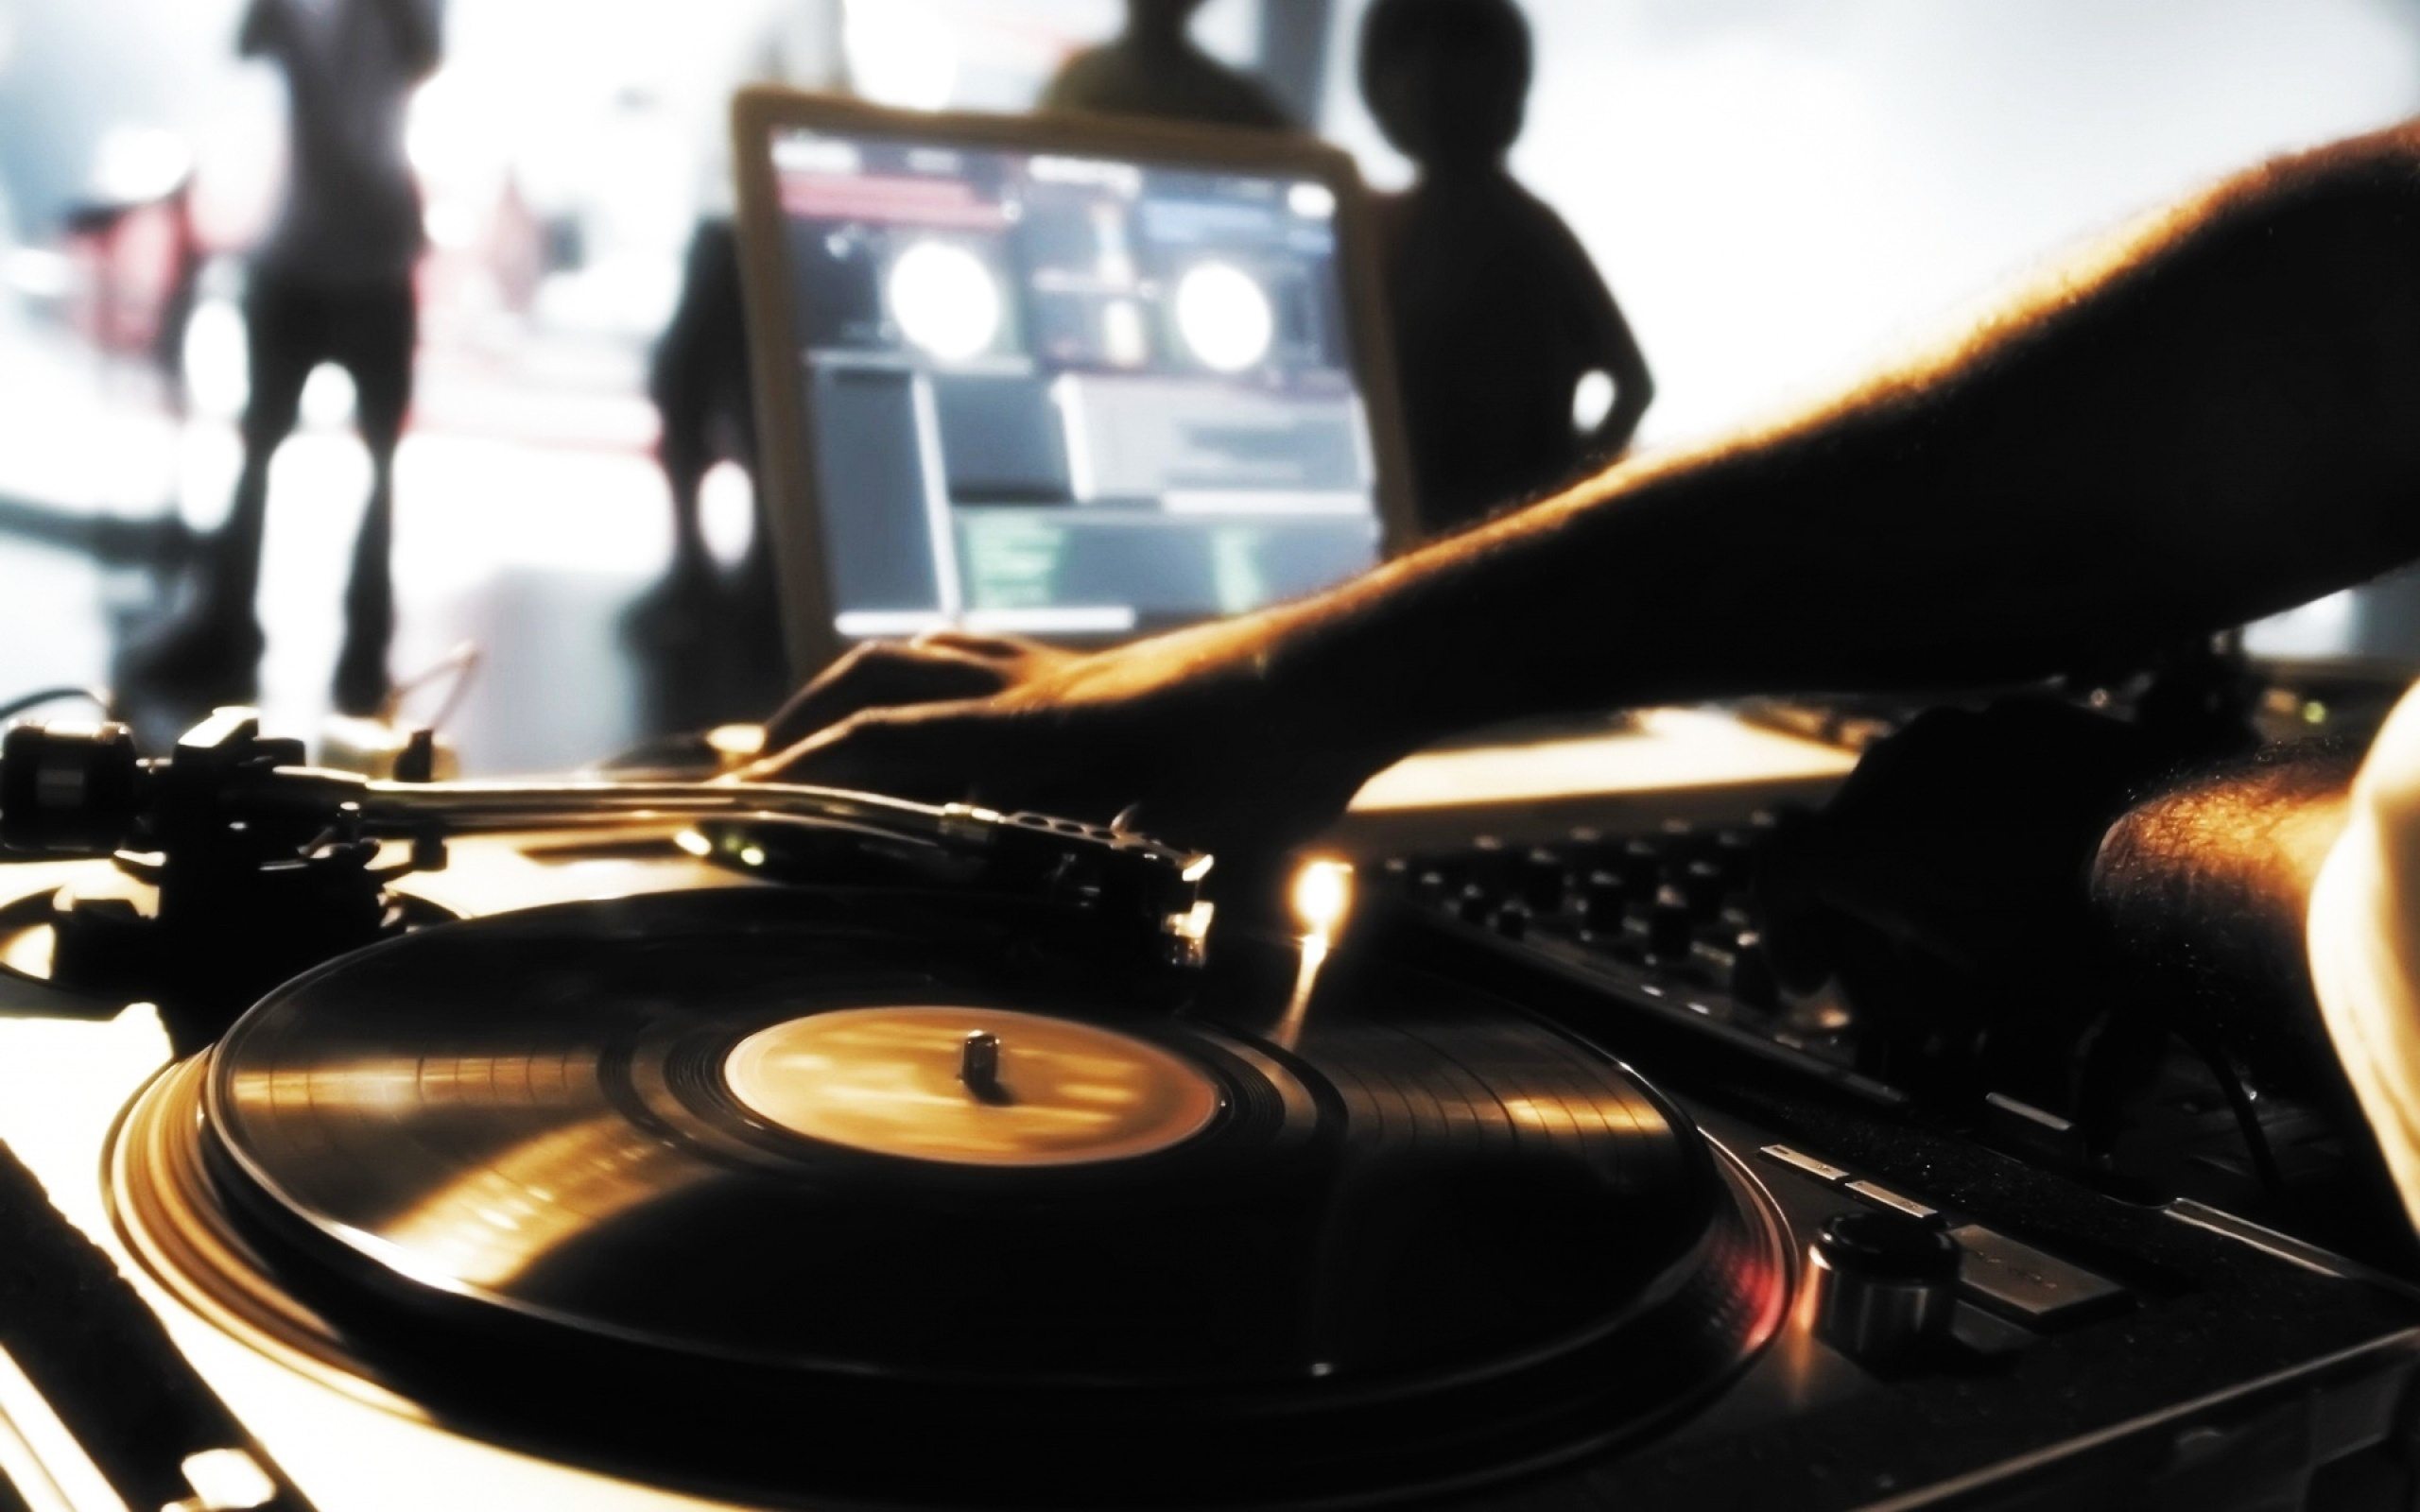 House music dj wallpaper wallpapersafari for House music records